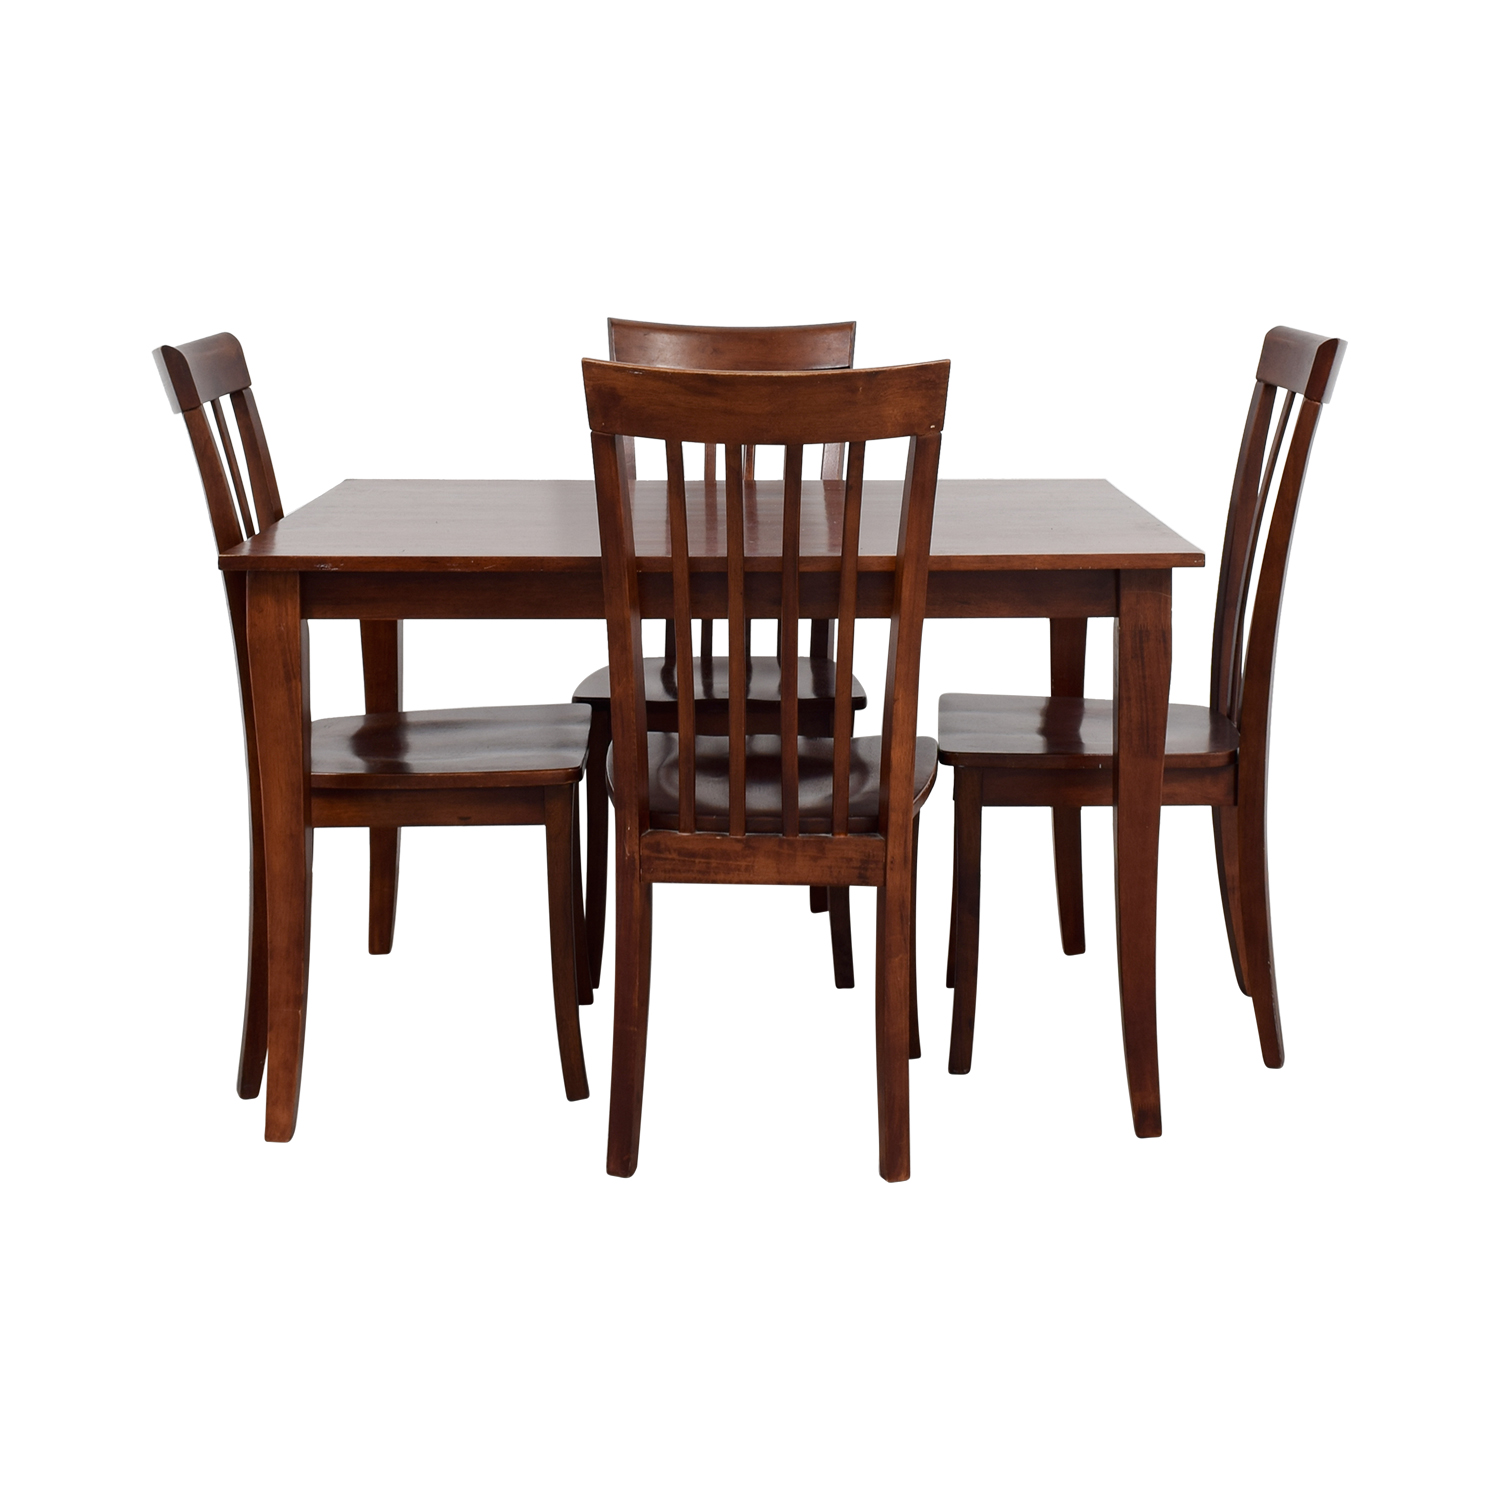 Wooden Dining Table Set ~ Wood dining table and chairs set